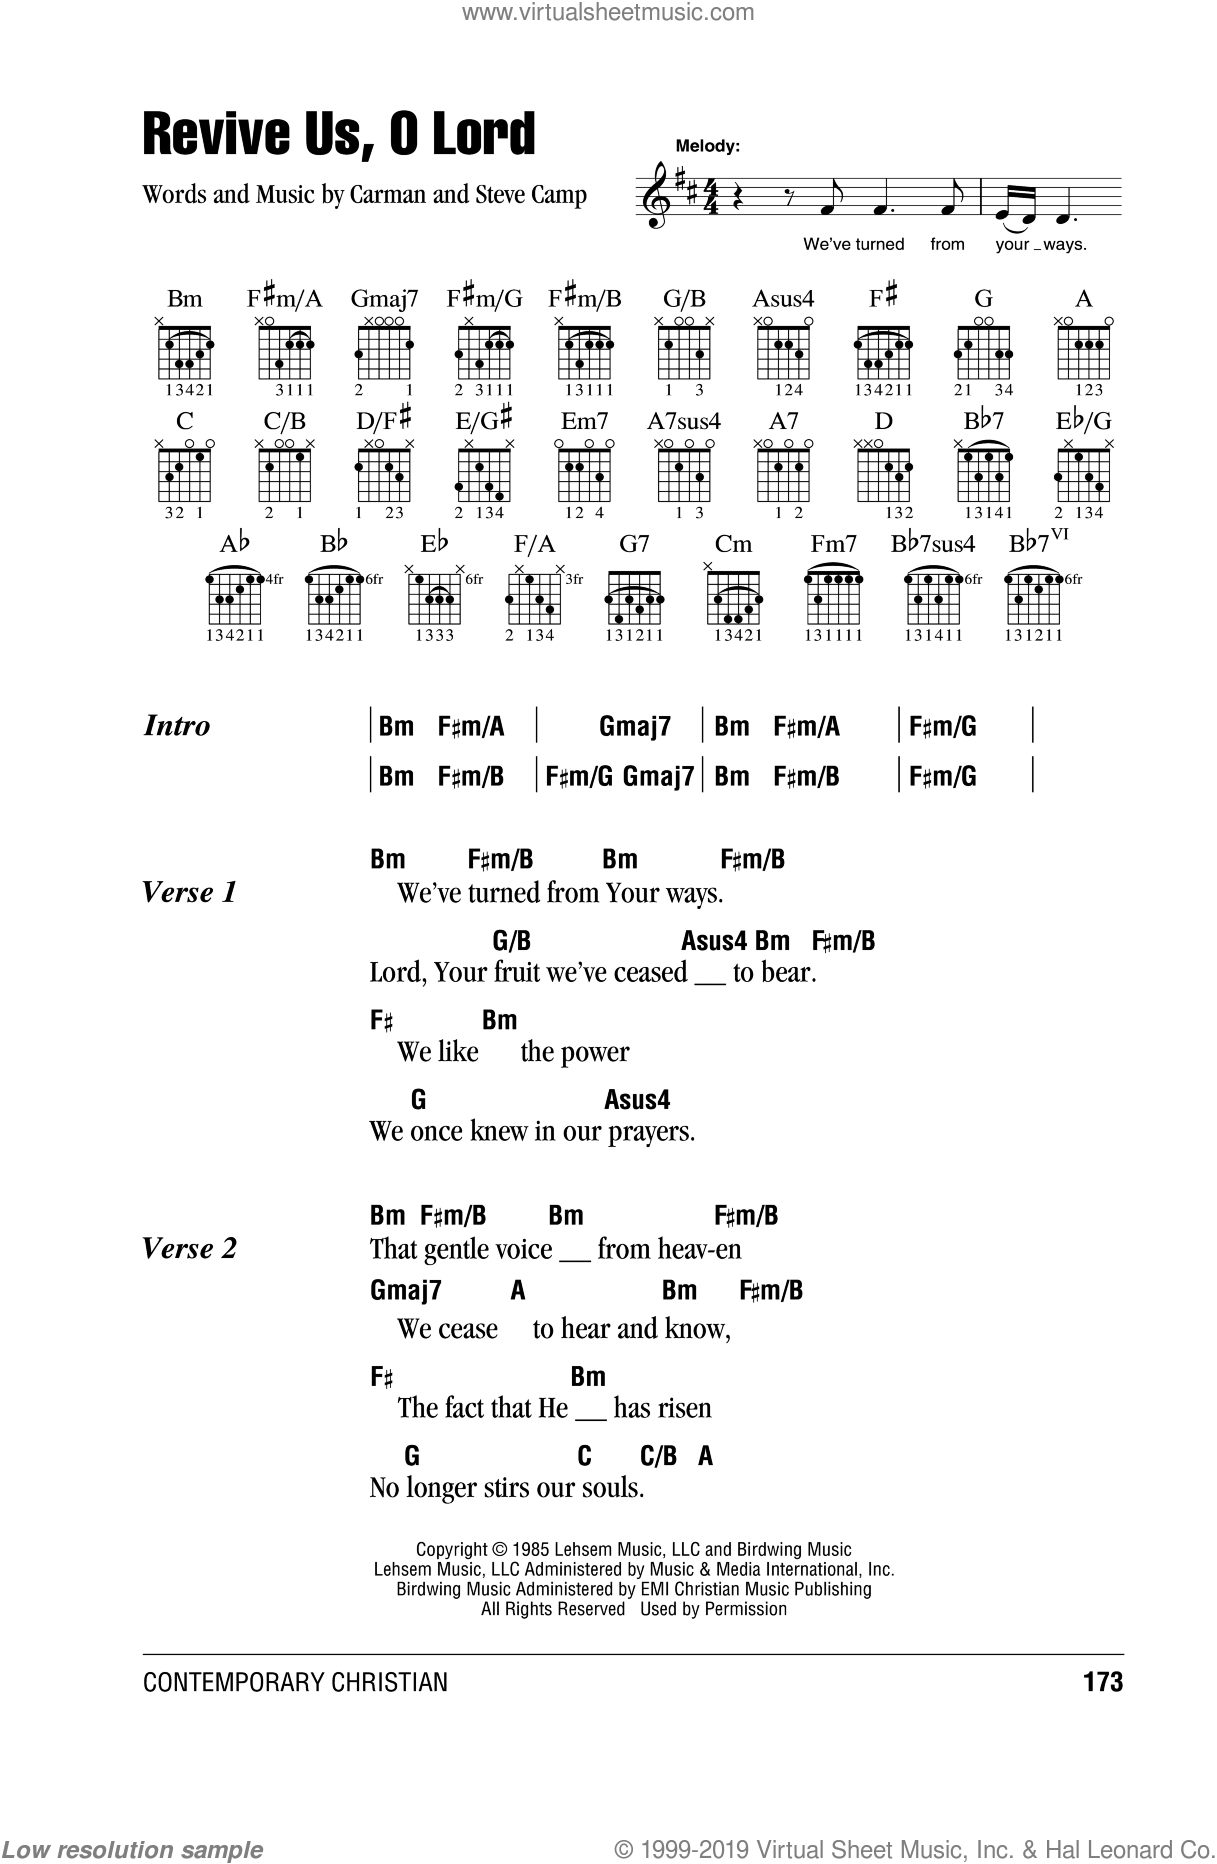 Camp - Revive Us, O Lord sheet music for guitar (chords) [PDF]